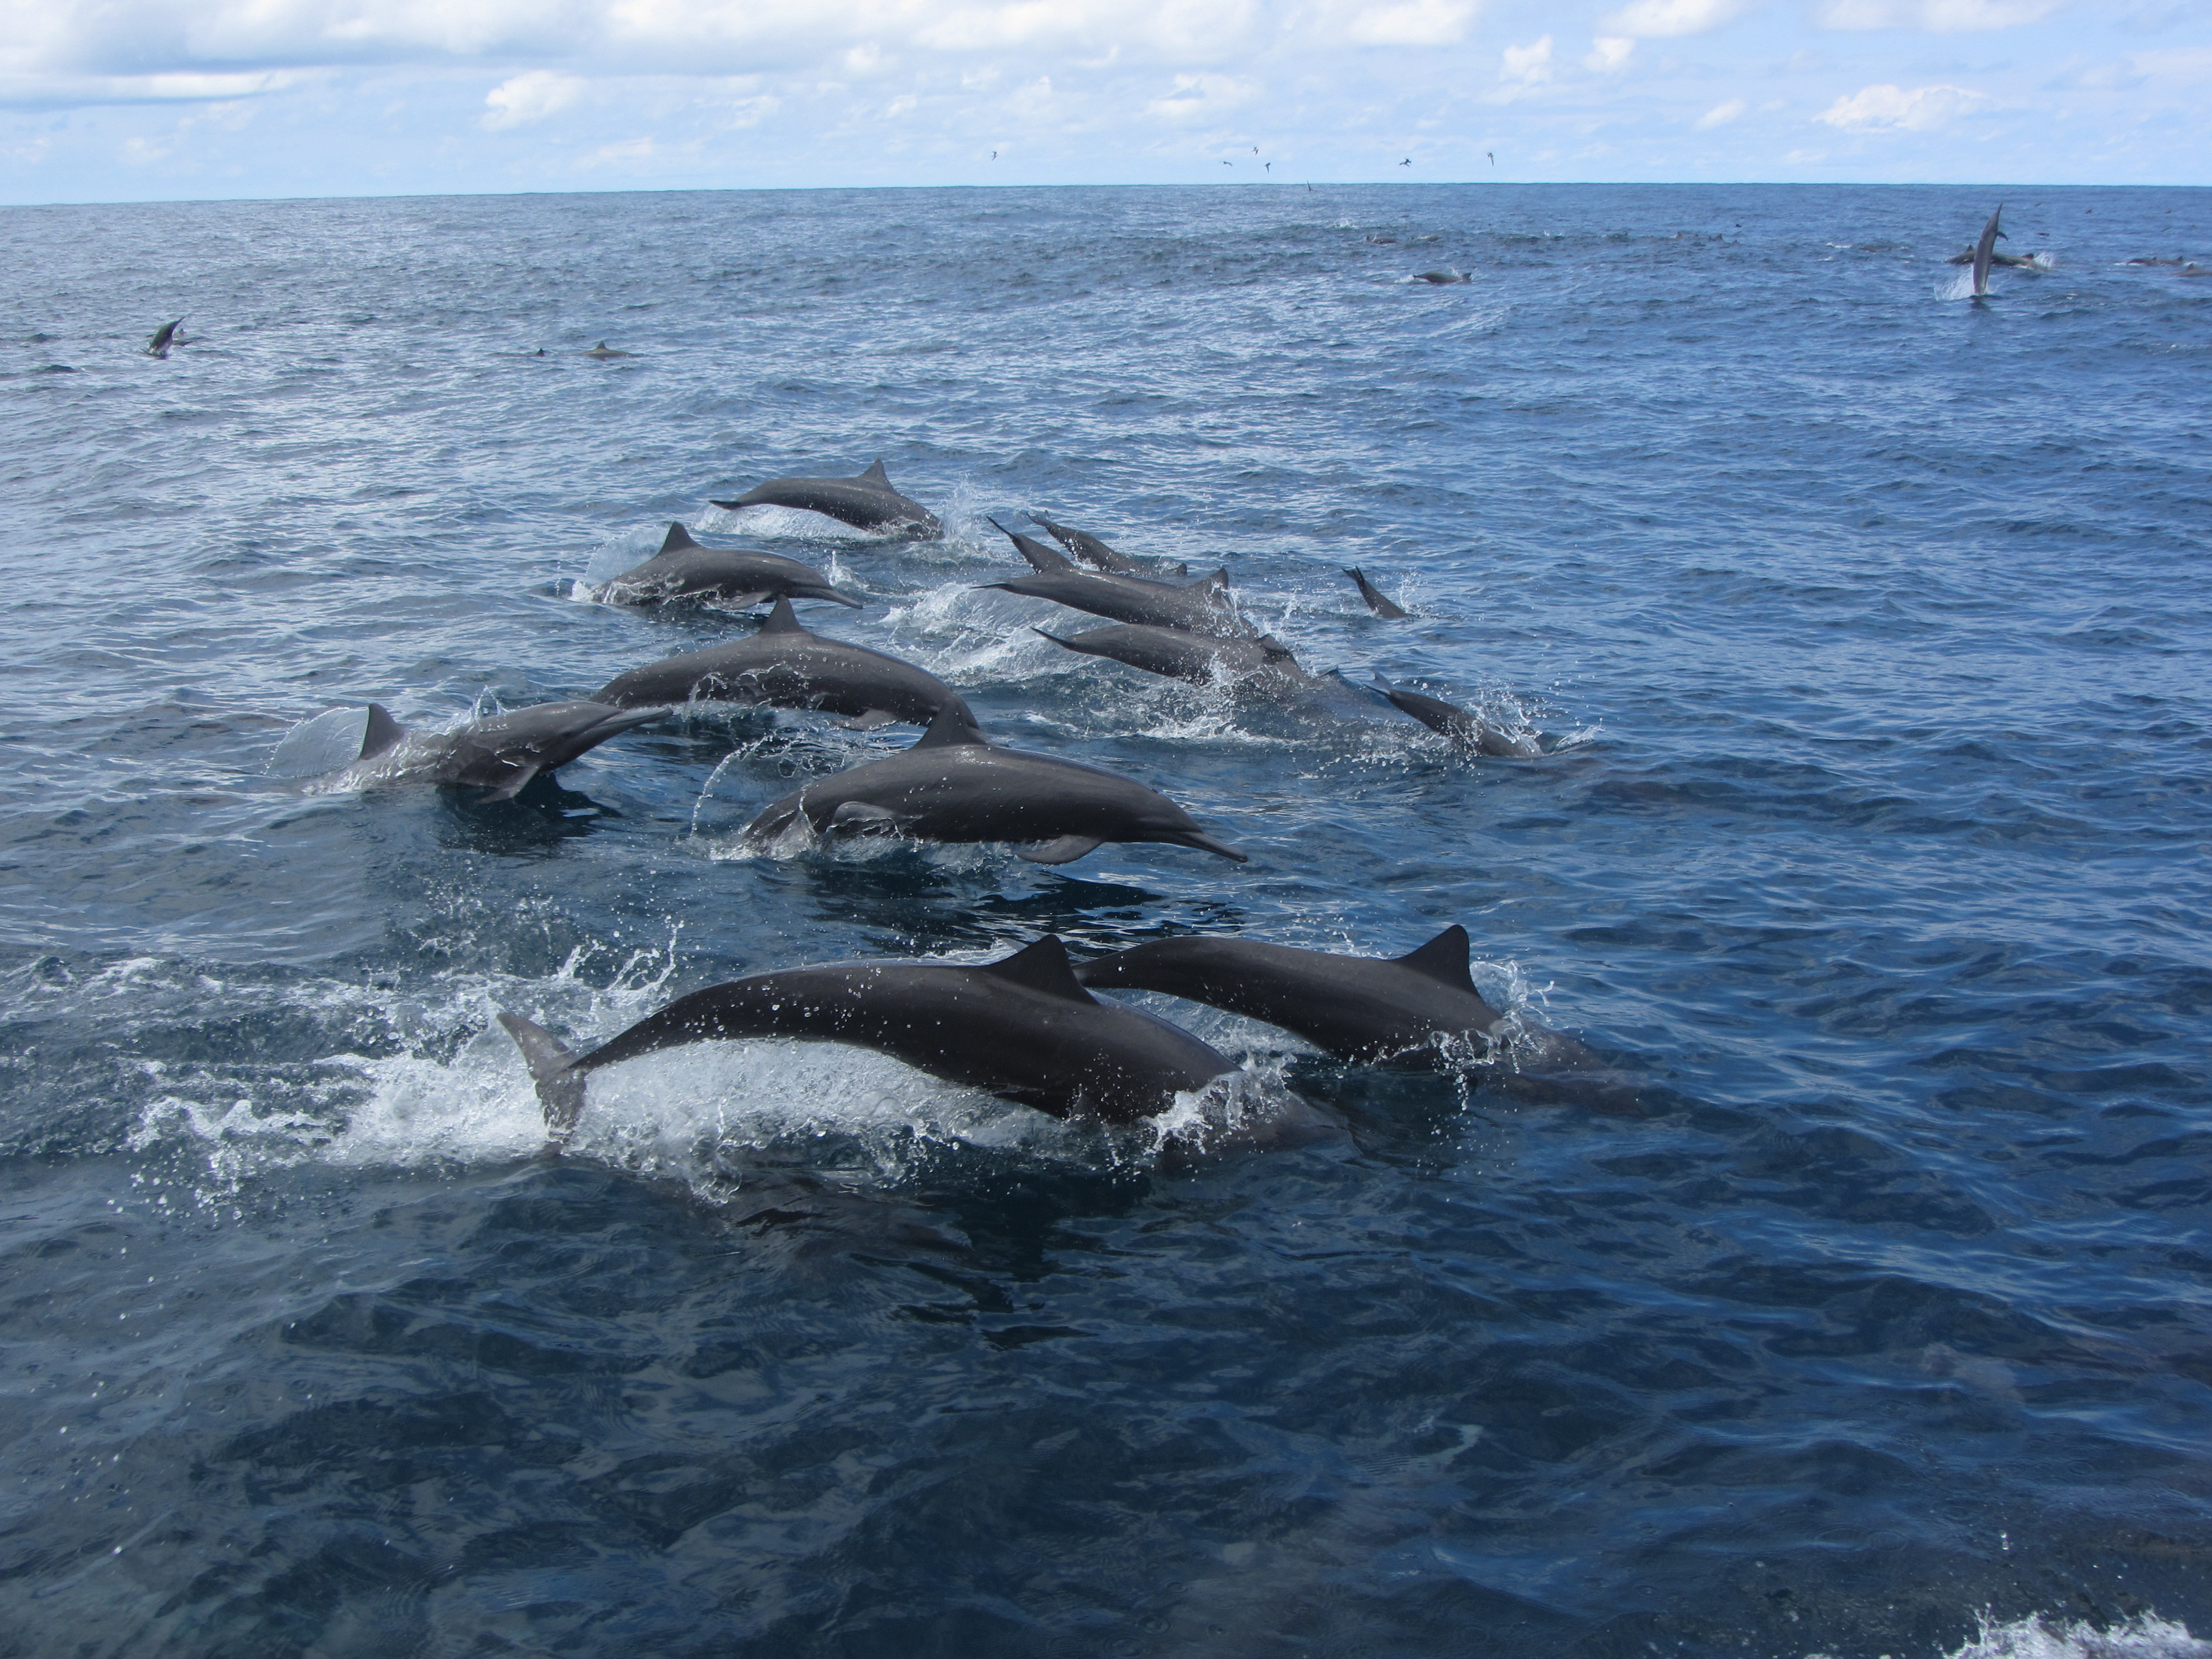 Spinner dolphins in Costa Rica